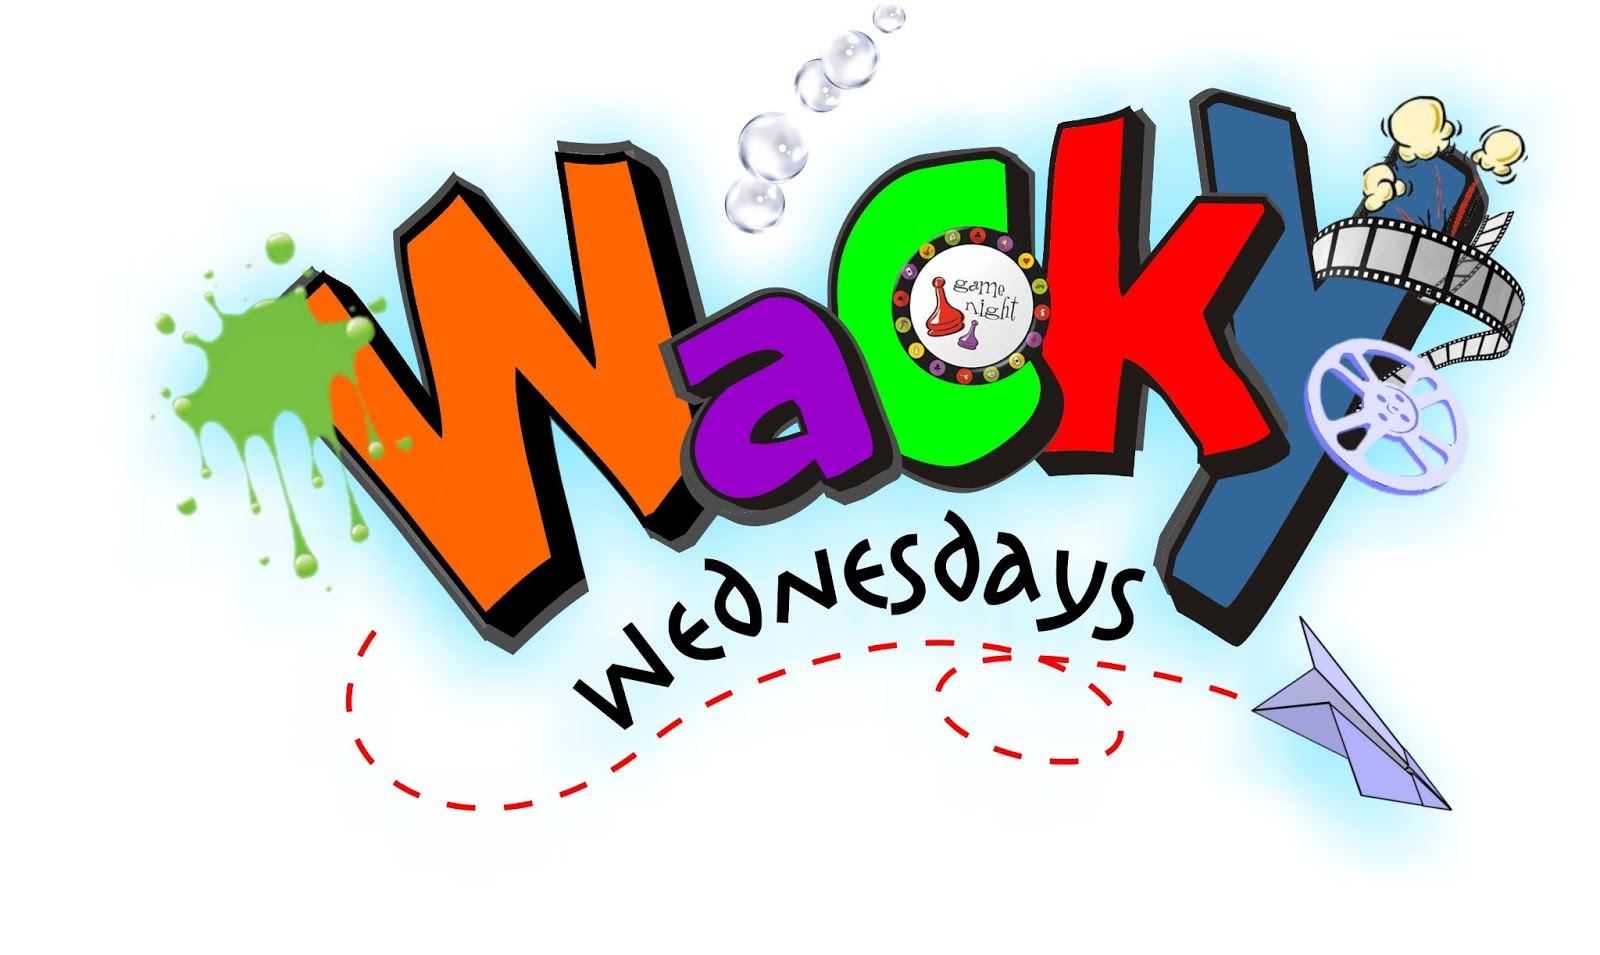 Wednesday clipart. Wacky